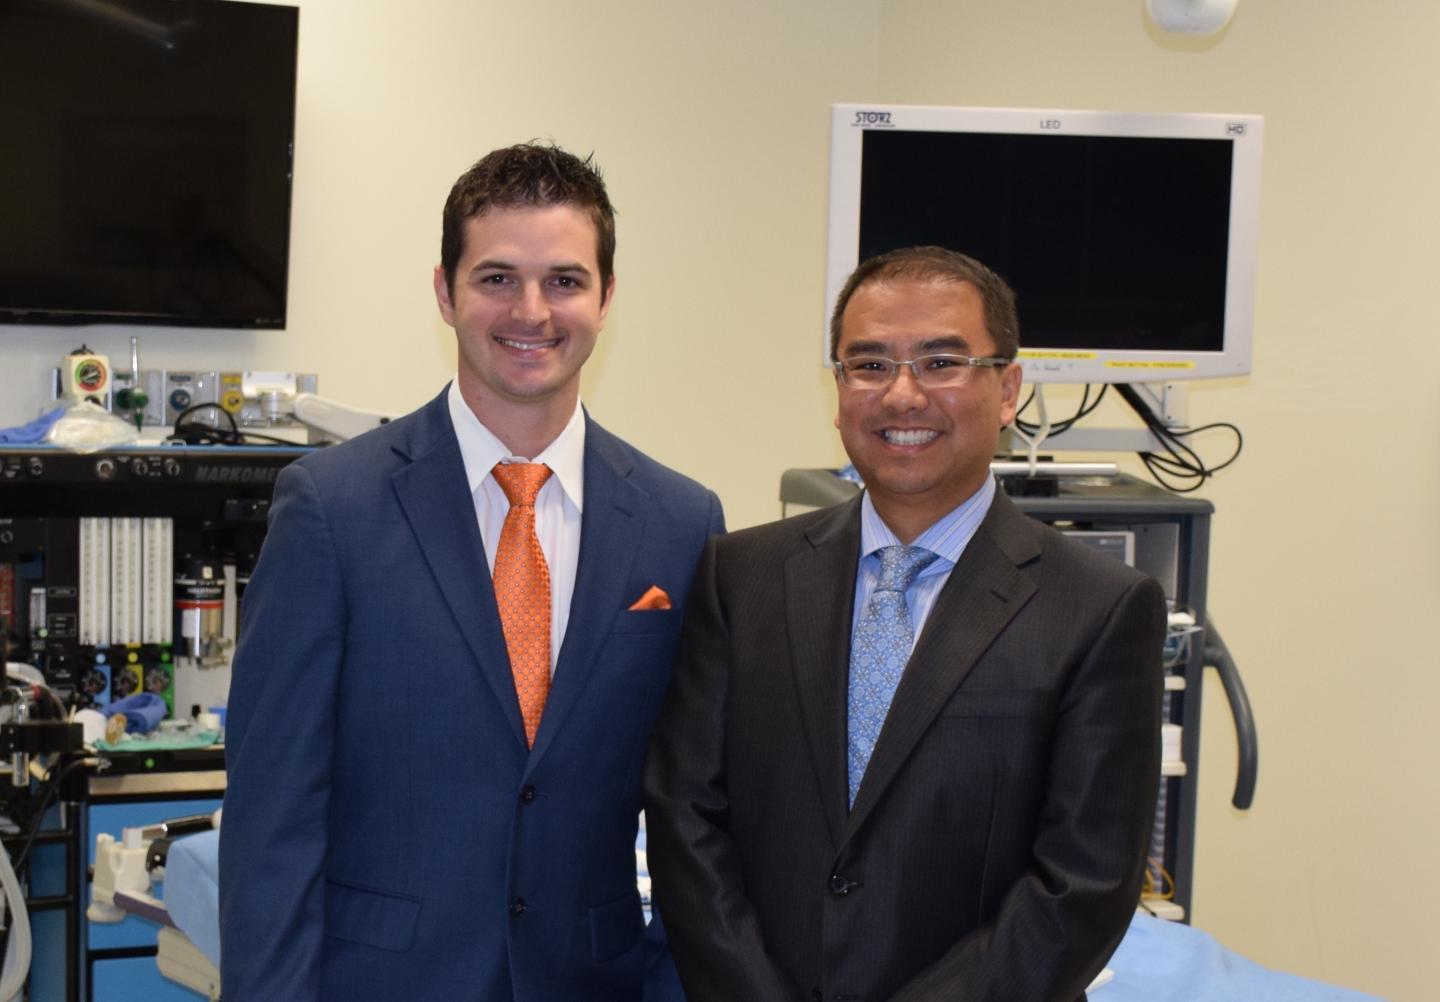 Drs. Shelby Lies and Andrew Zhang, University of Texas Medical Branch at Galveston